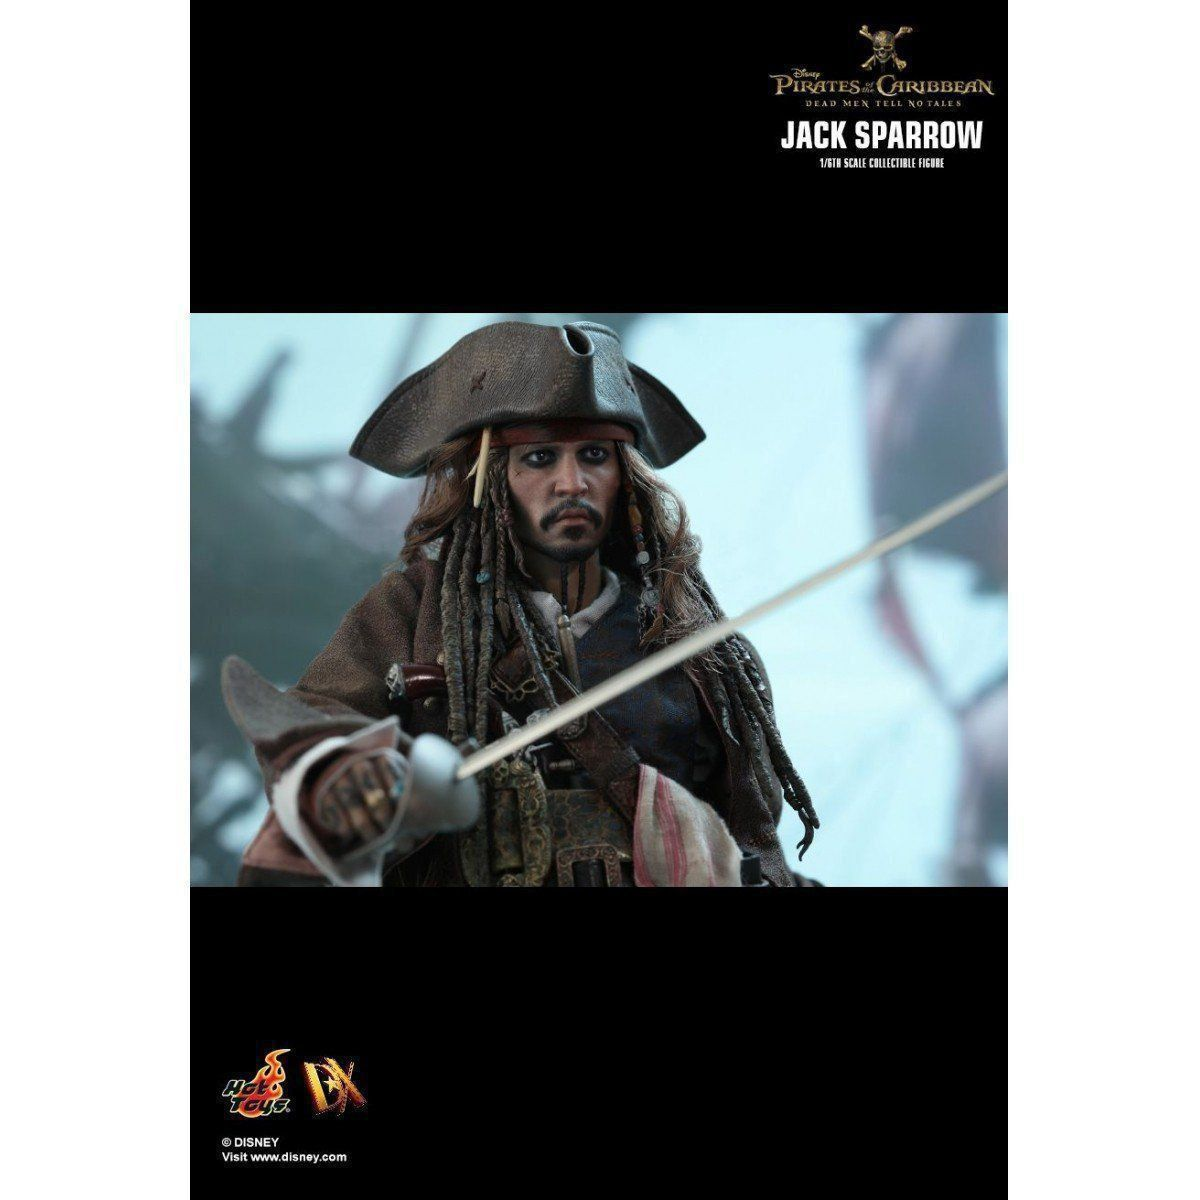 Boneco Jack Sparrow: Piratas do Caribe A Vingança de Salazar (Dead Men Tell No Tales) Escala 1/6 (DX15) - Hot Toys